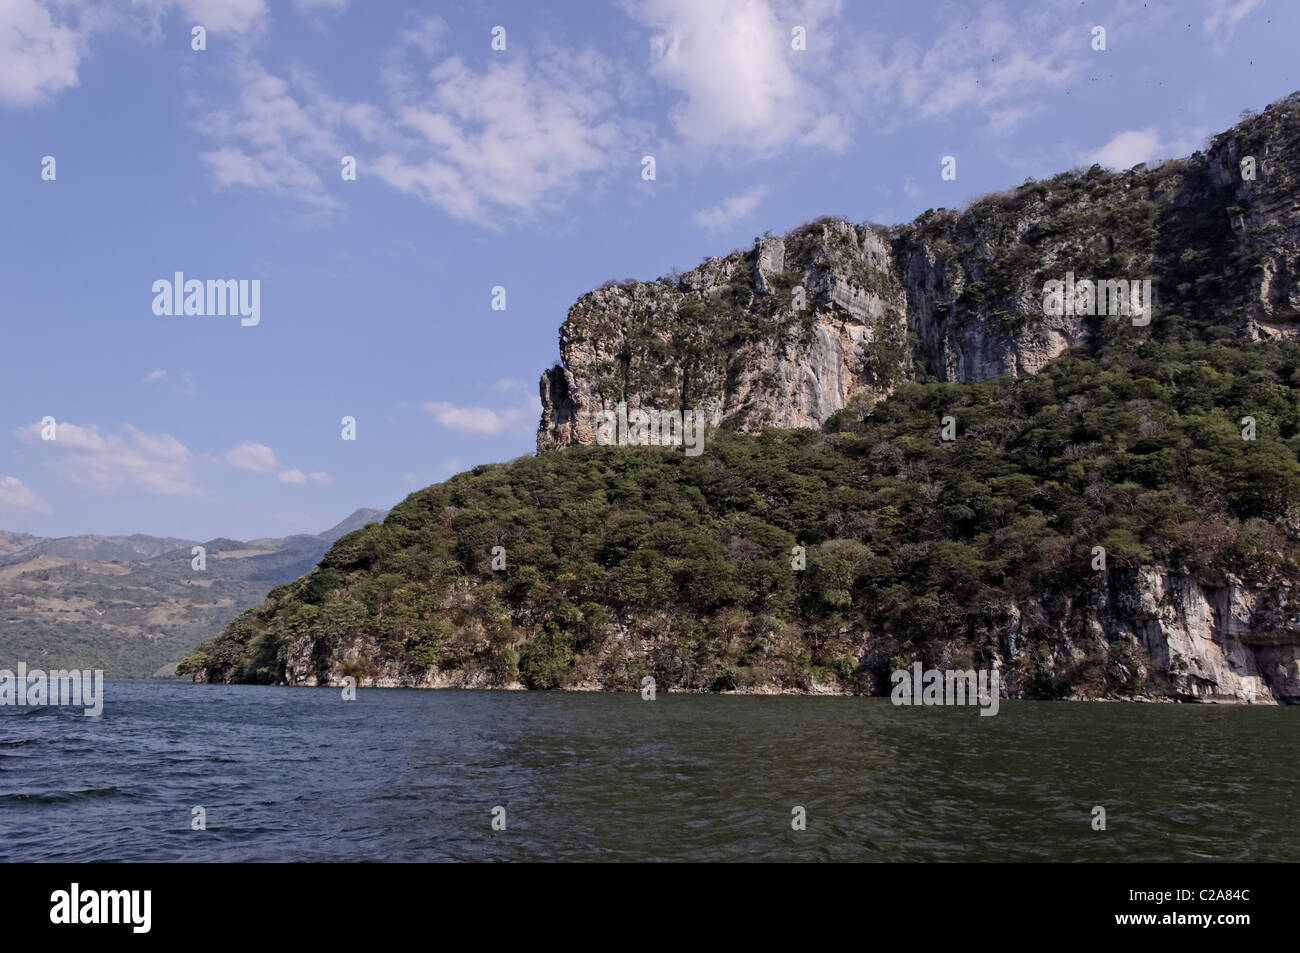 Sumidero Canyon walls - Stock Image